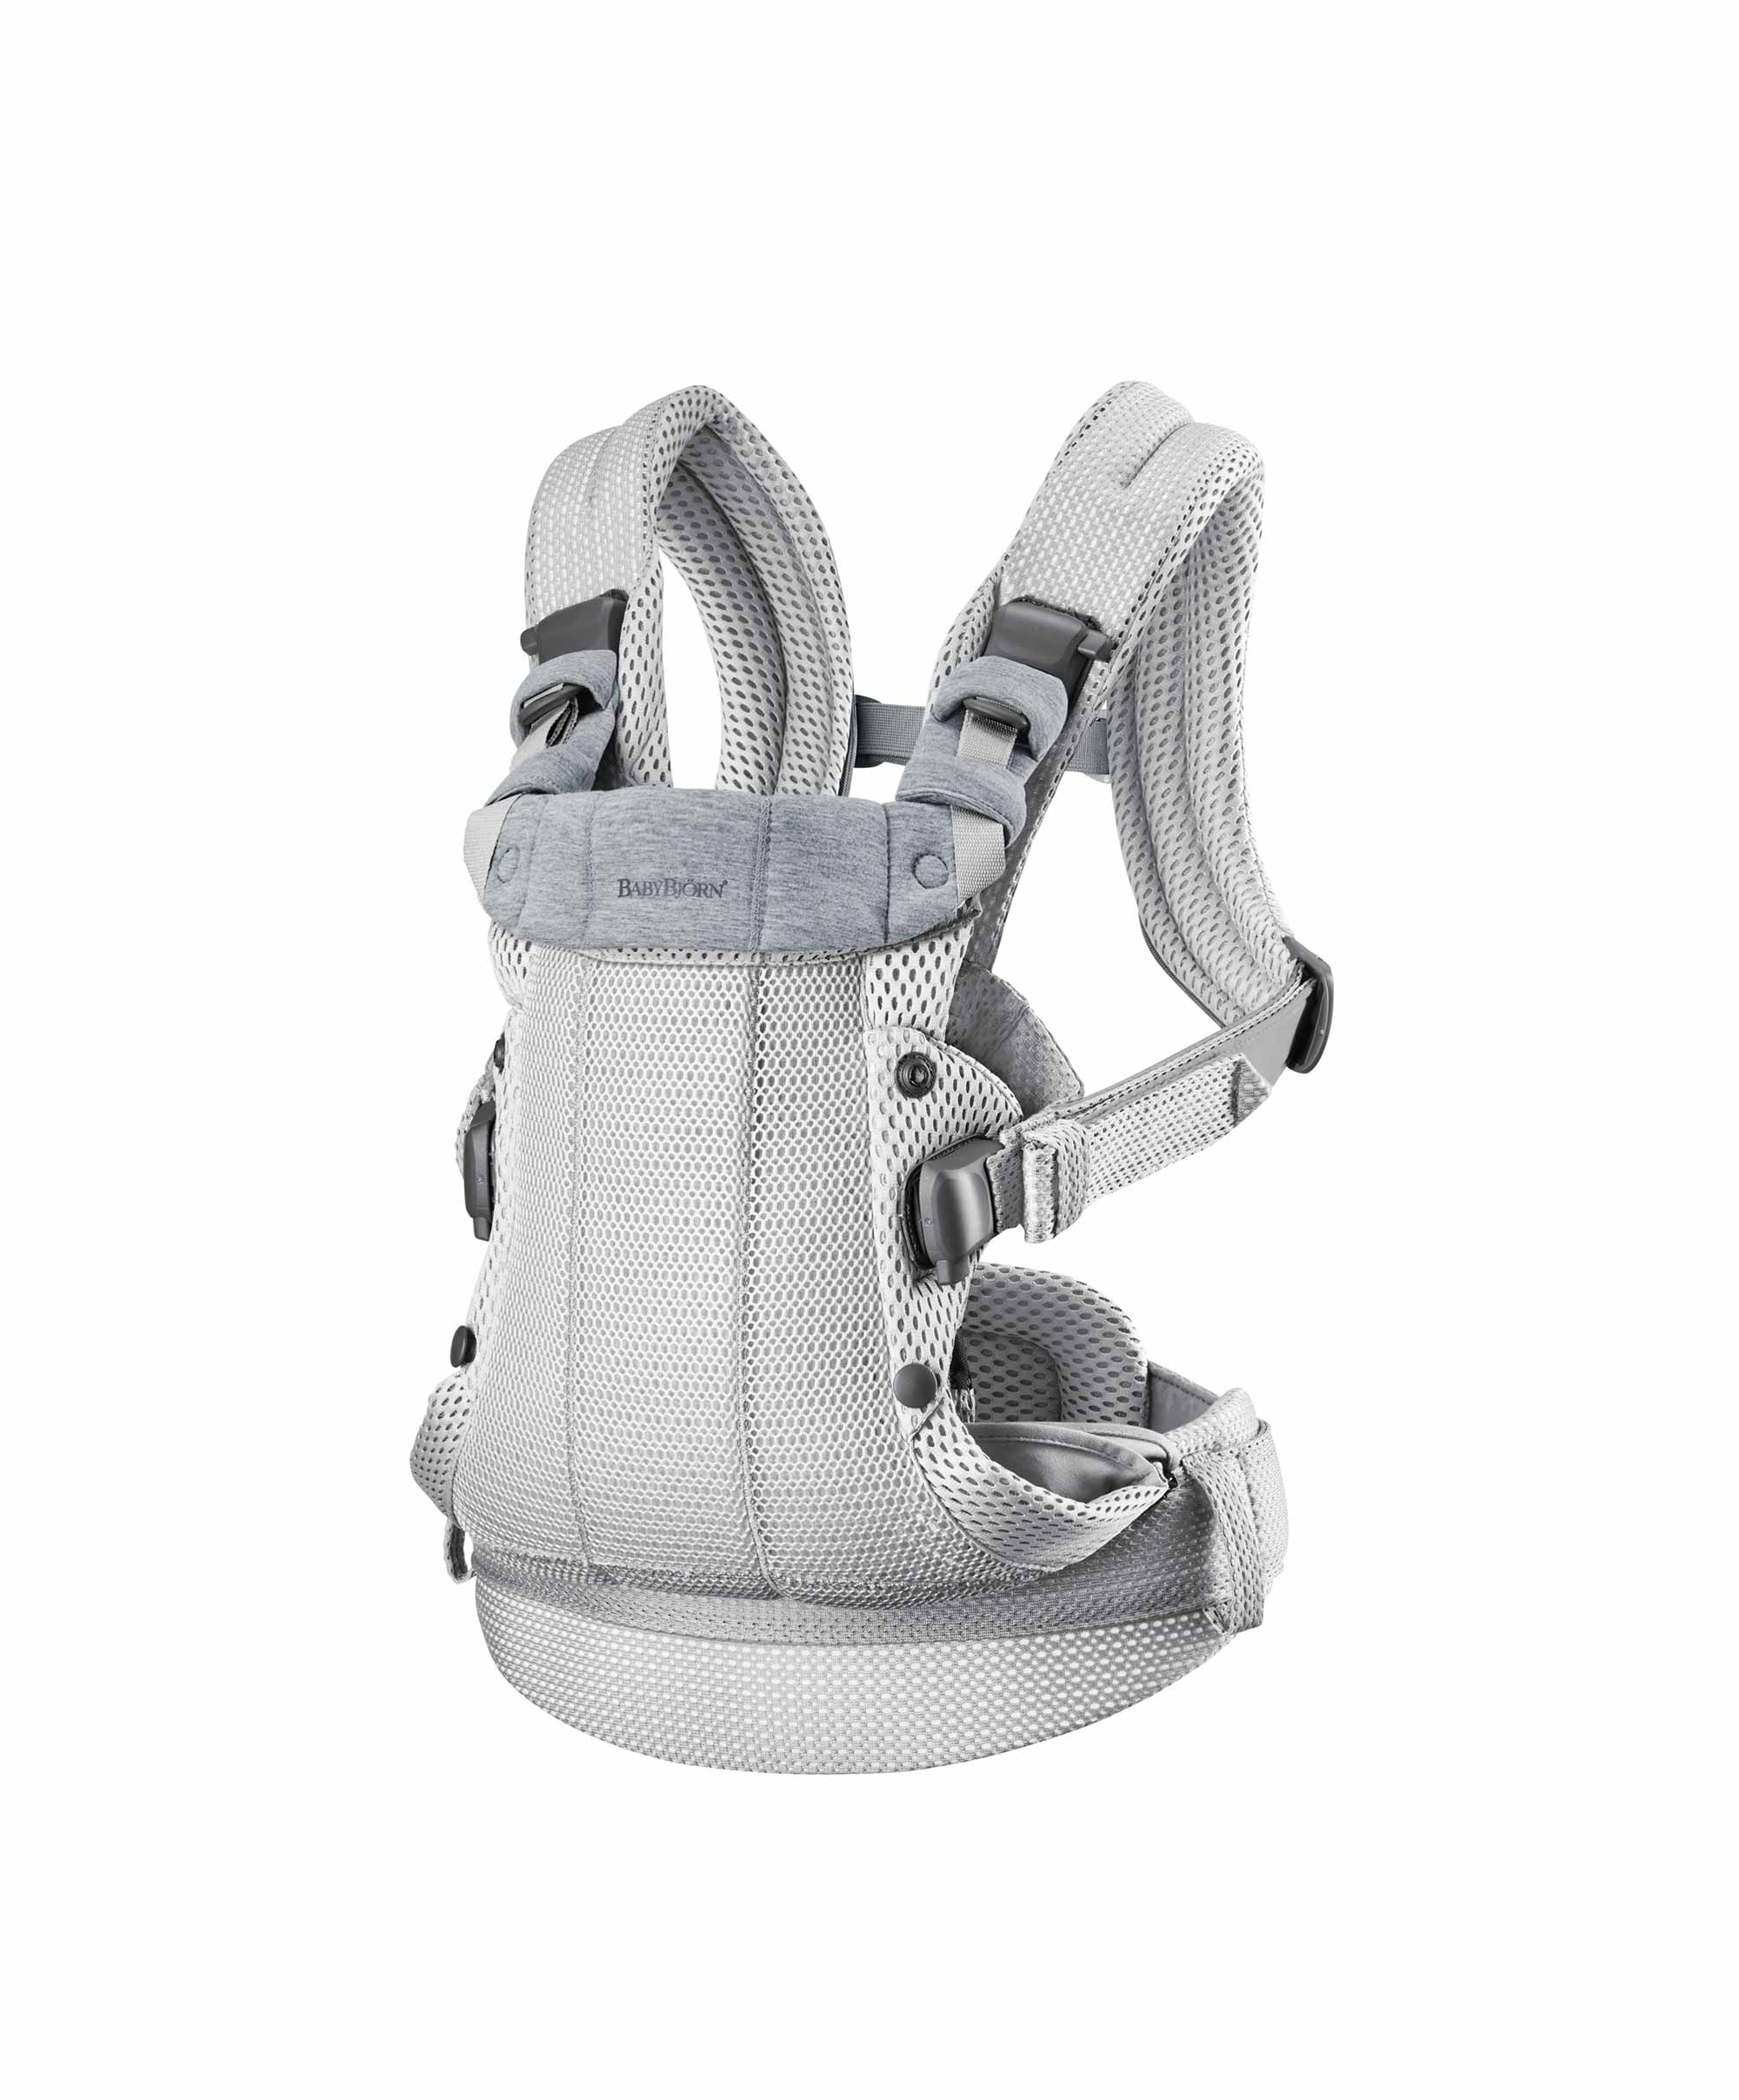 Baby Bjorn Baby Harmony Carrier - Silver